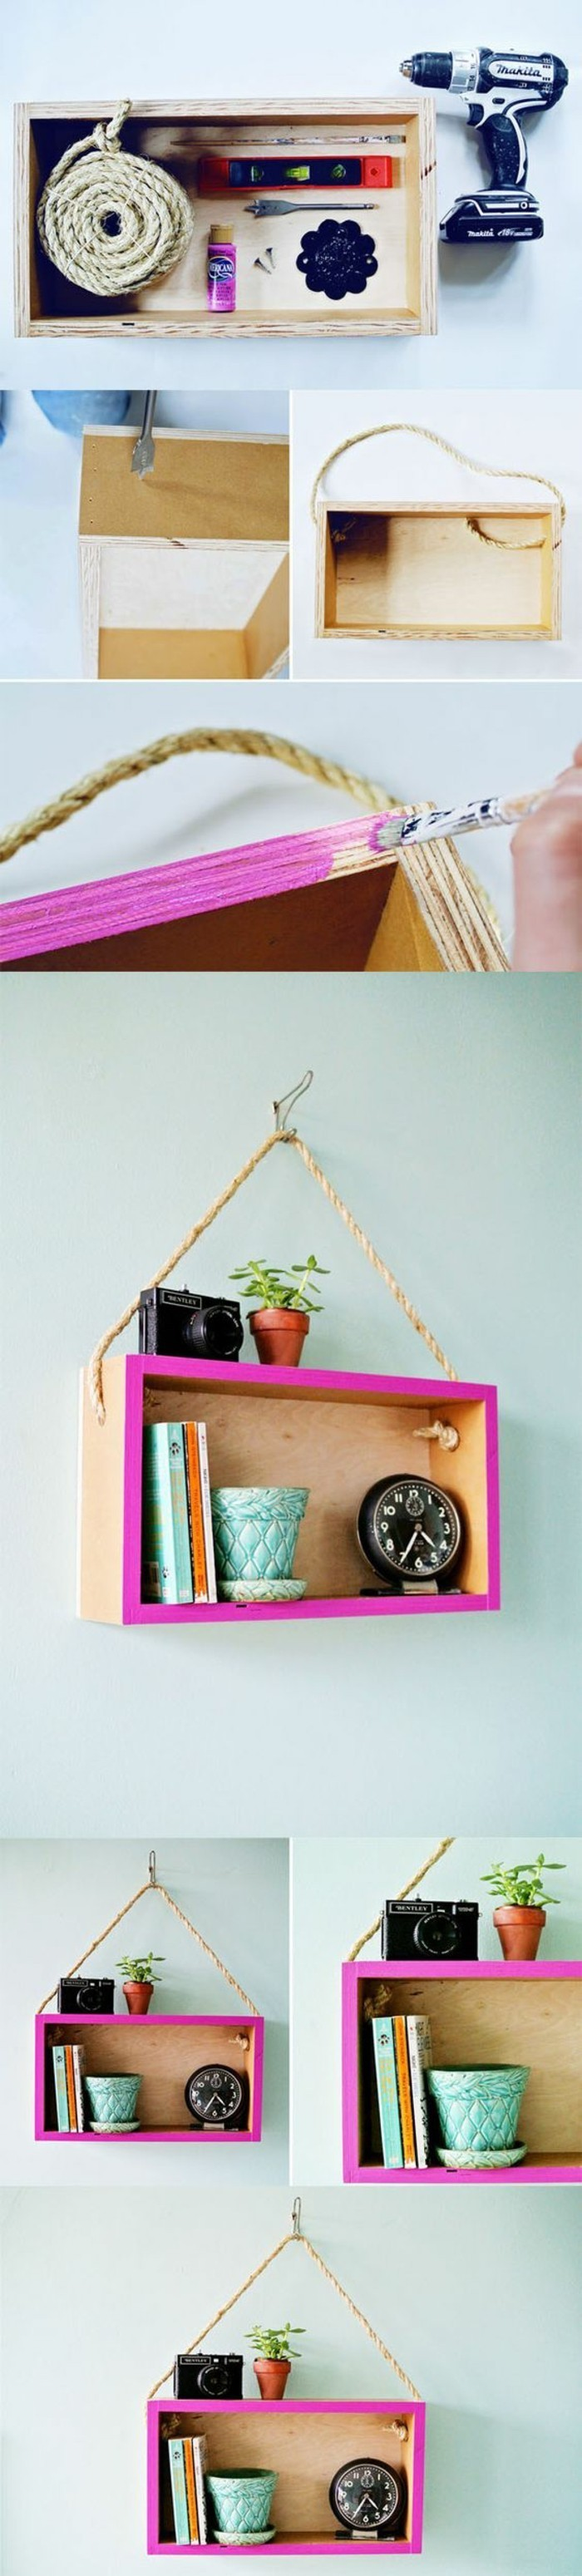 wooden crate, hanging on a white wall, unique wall decor, step by step, diy tutorial, painted pink frame